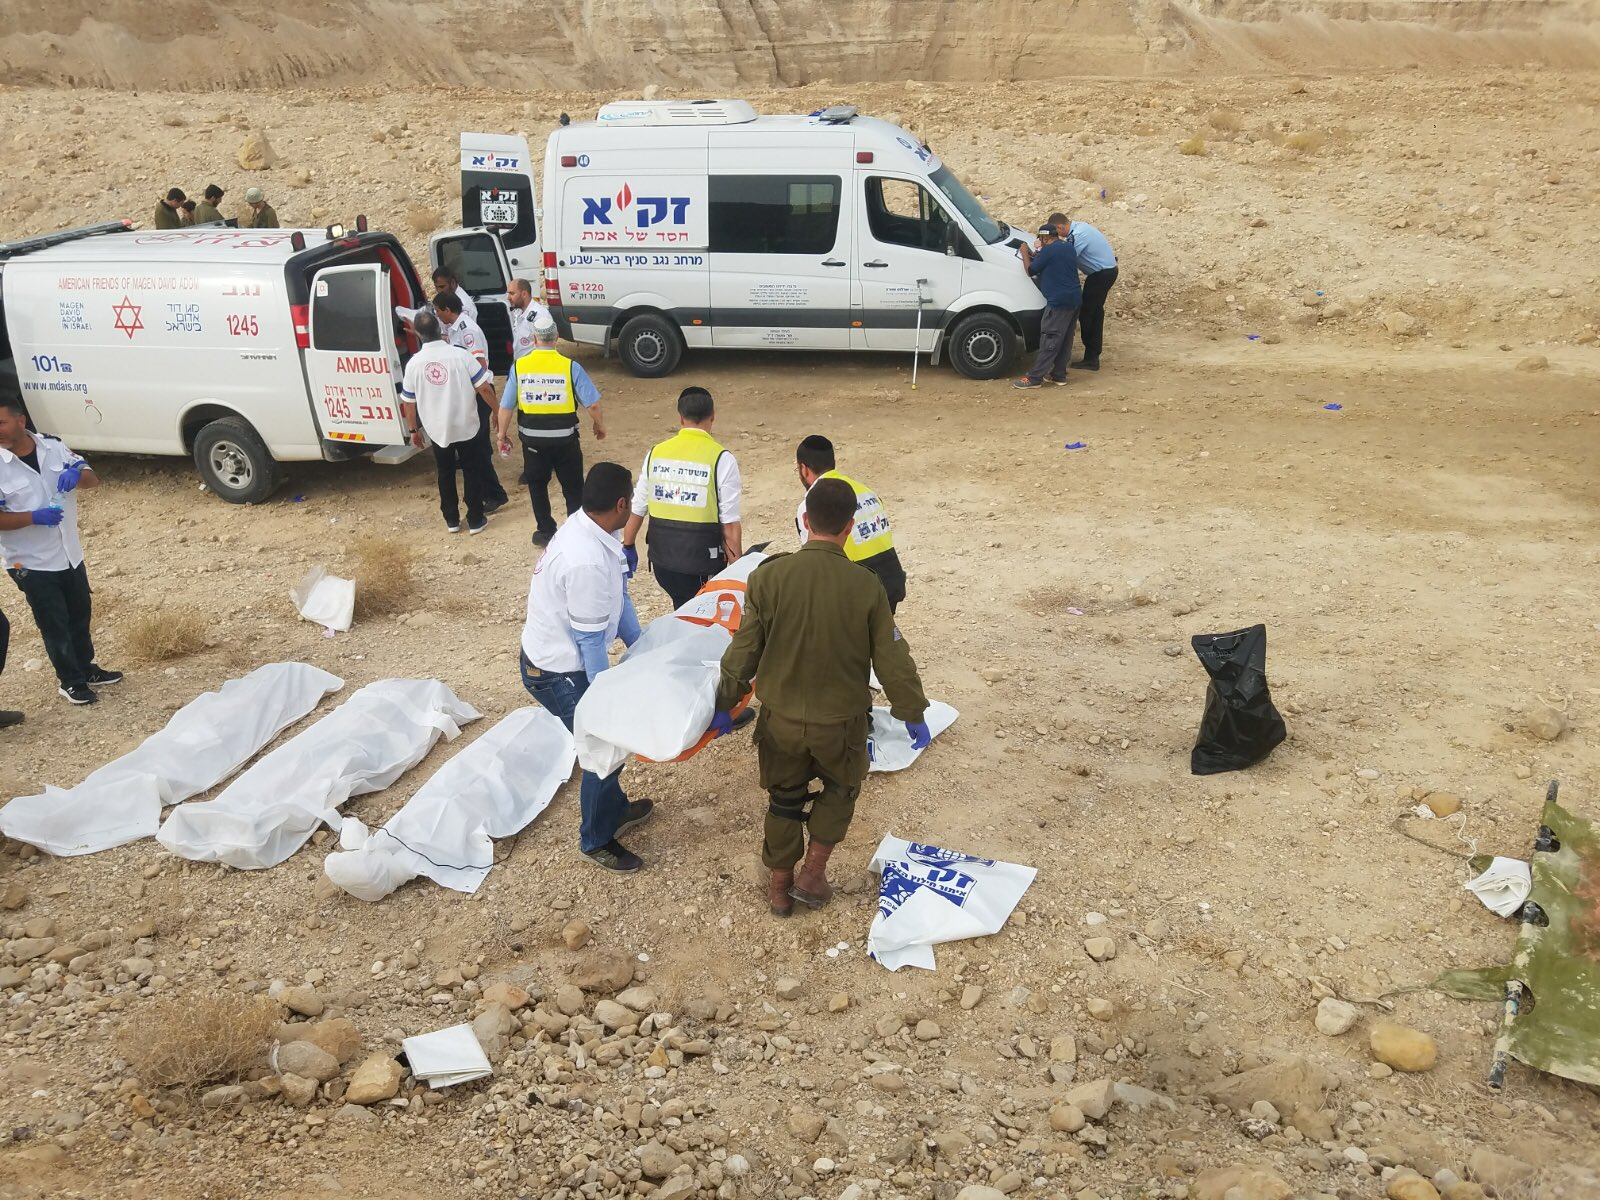 Teenagers Die, 1 Missing in Terrible Flash Floods in Israel (PHOTOS, VIDEOS)